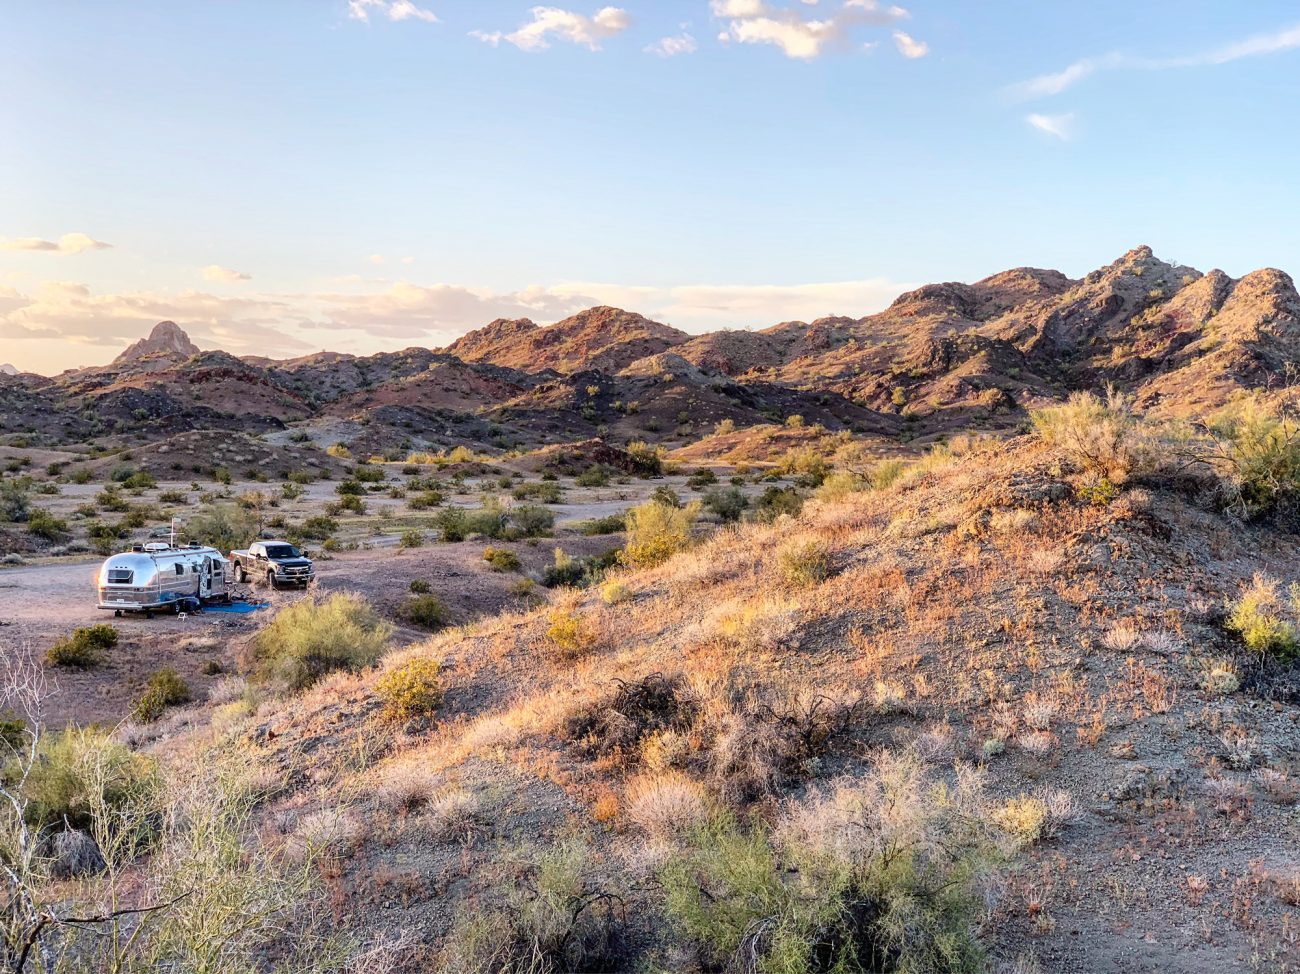 Lake Havasu City Boondocking